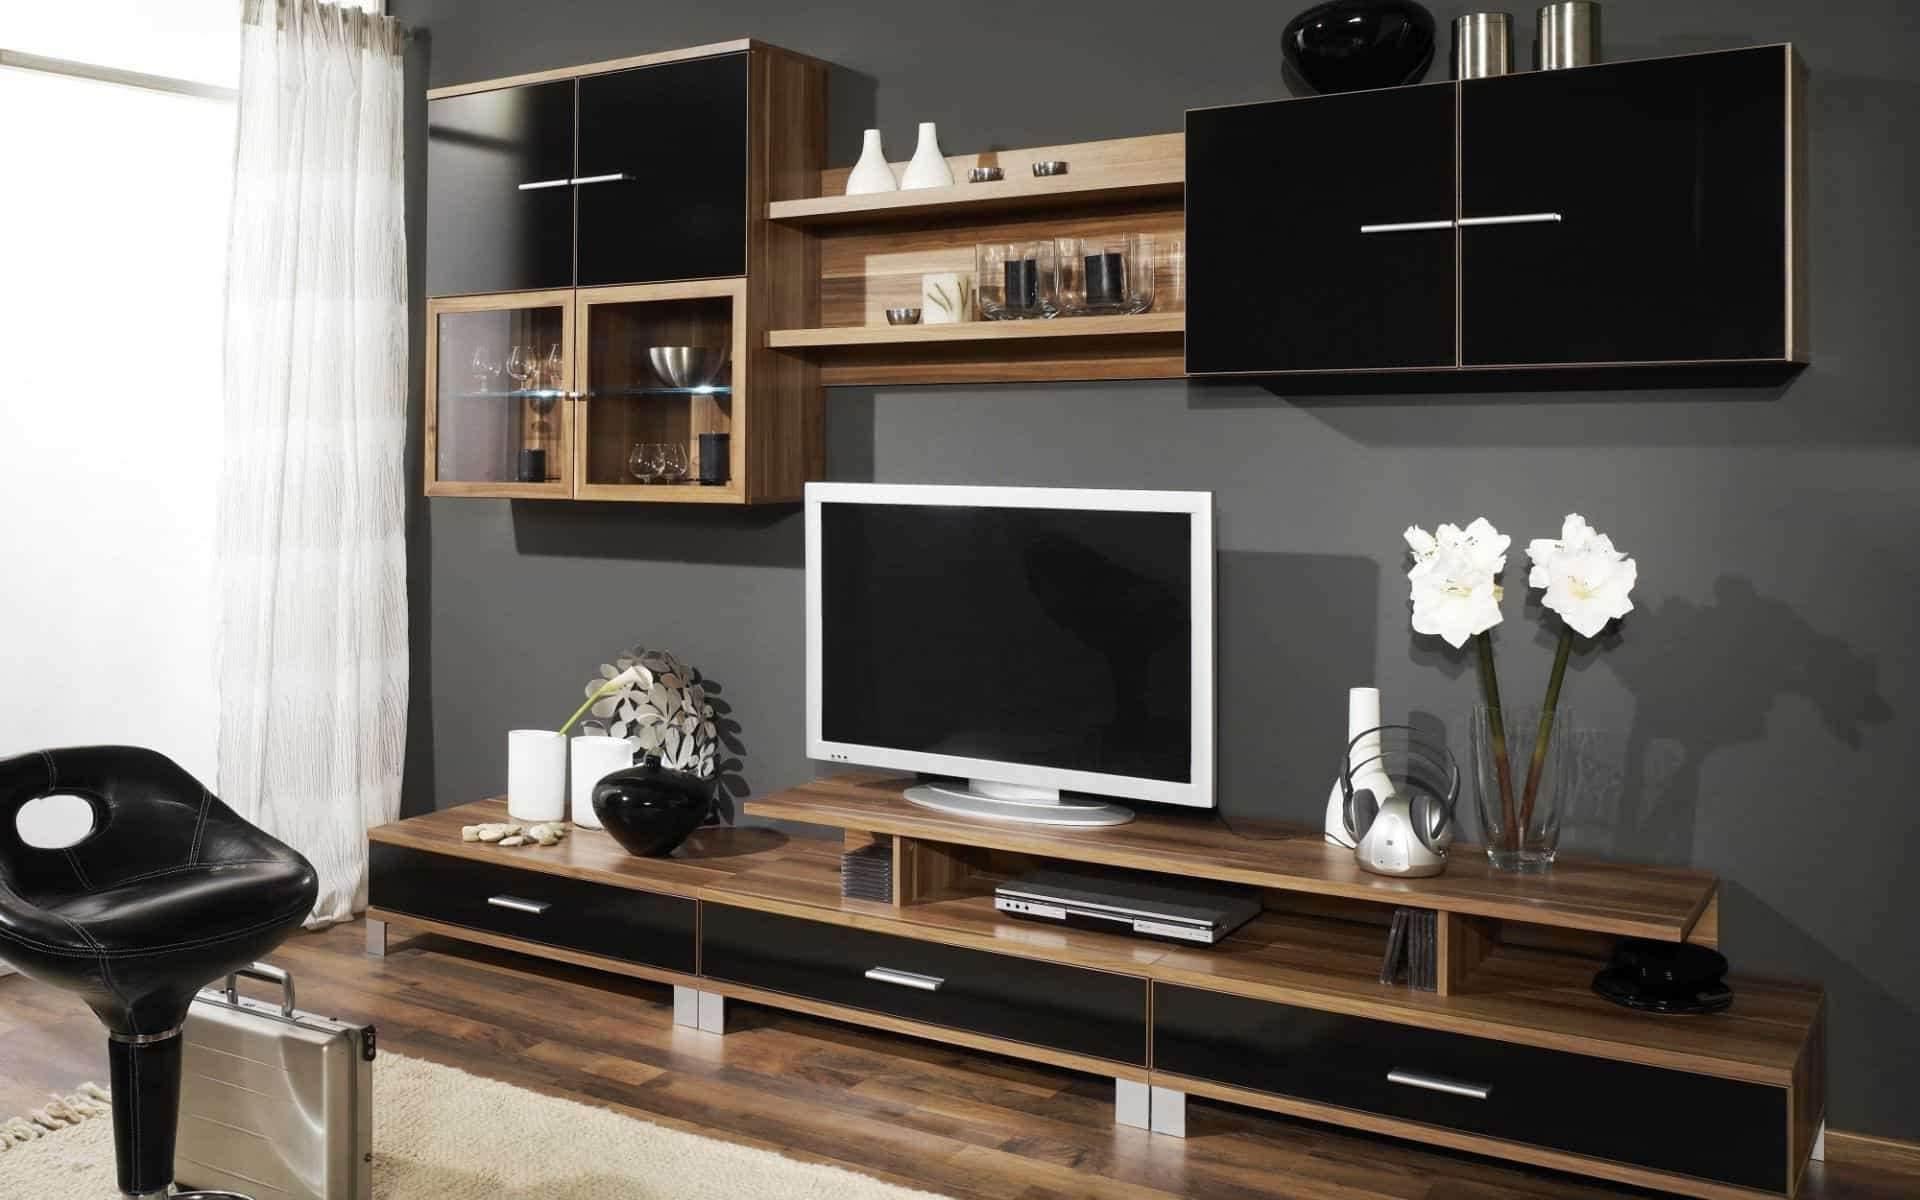 Modern Tv Stand With Bottom Drawers – Useful And Stylish Tv Stand Within Stylish Tv Stands (View 6 of 15)